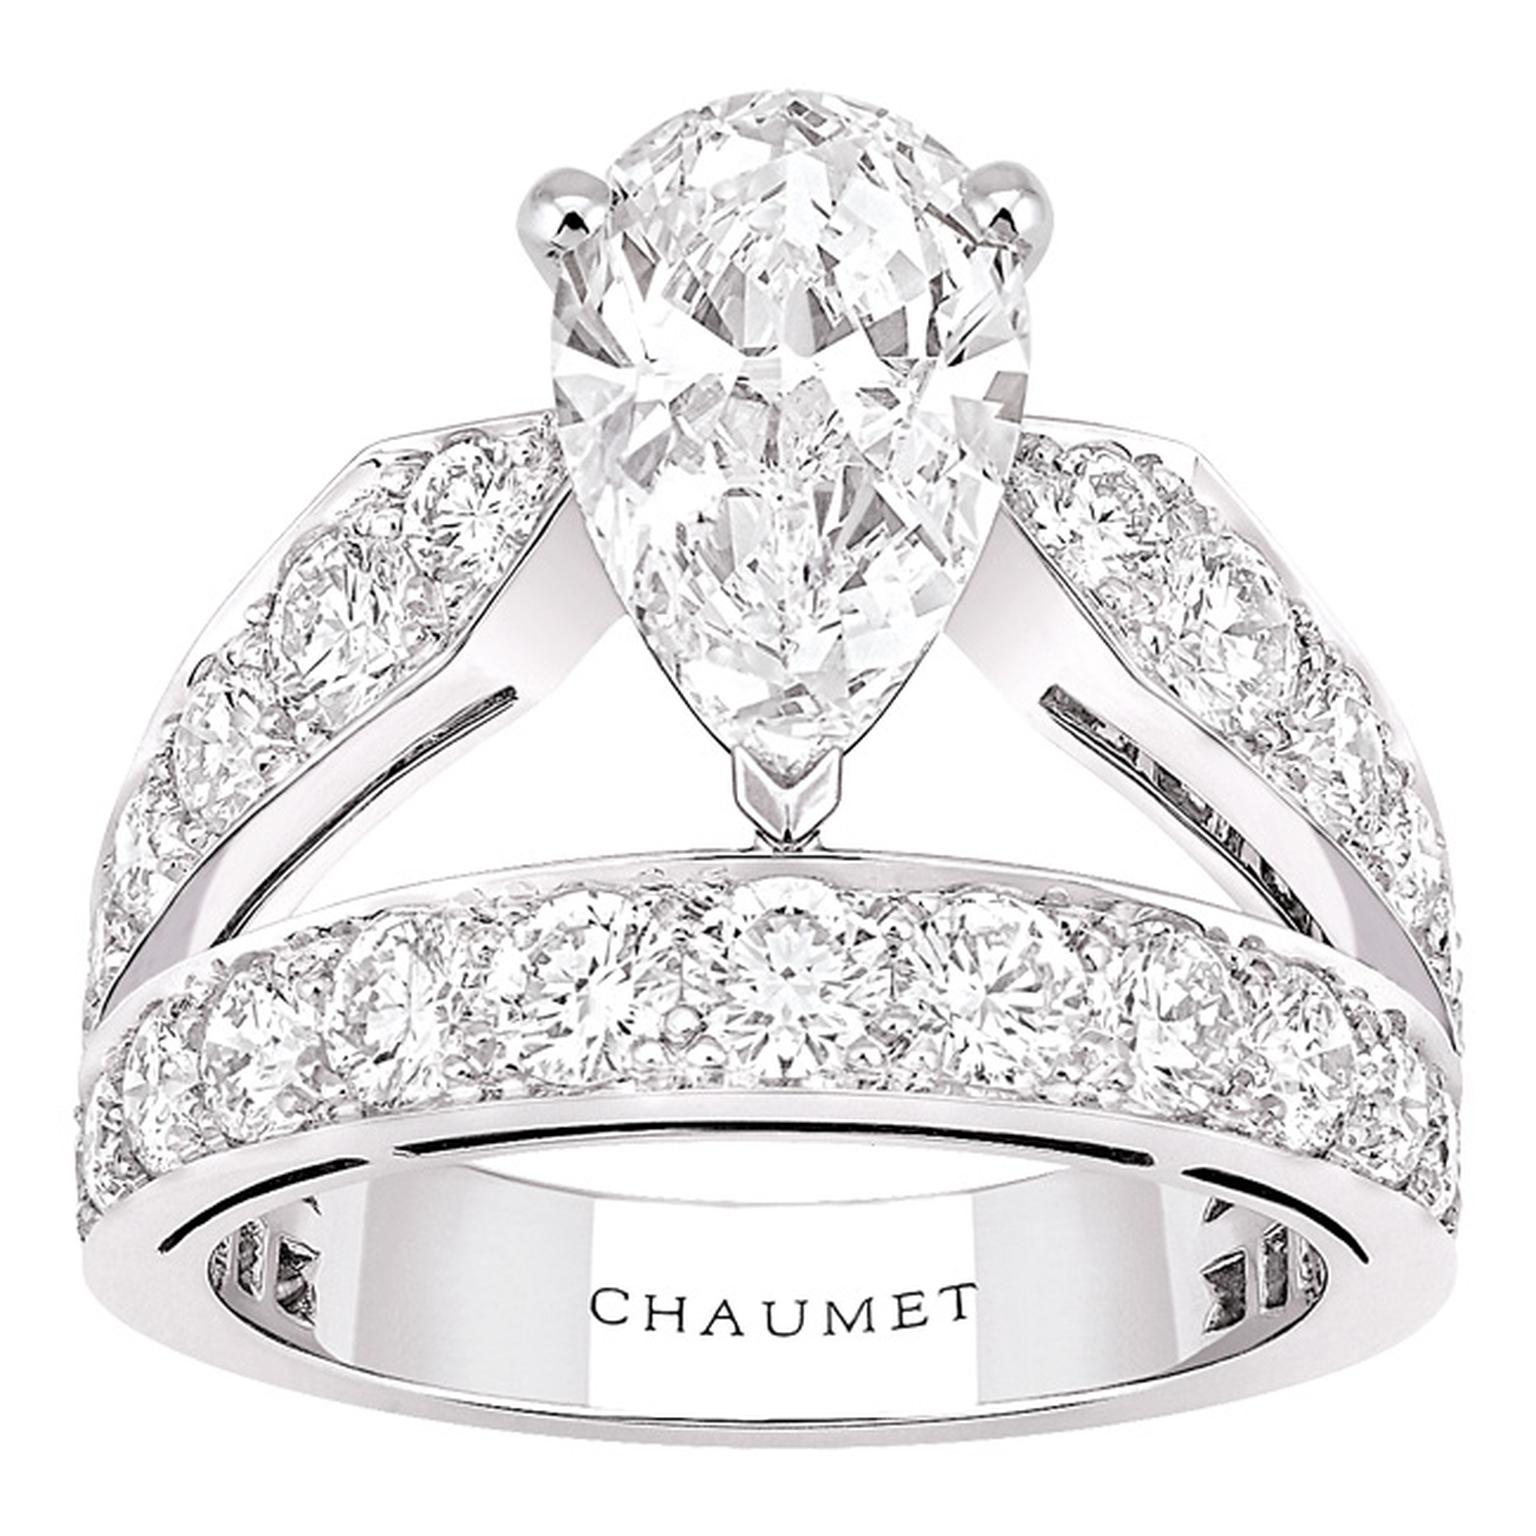 Chaumet Josephine diamond ring_20130408_Medium